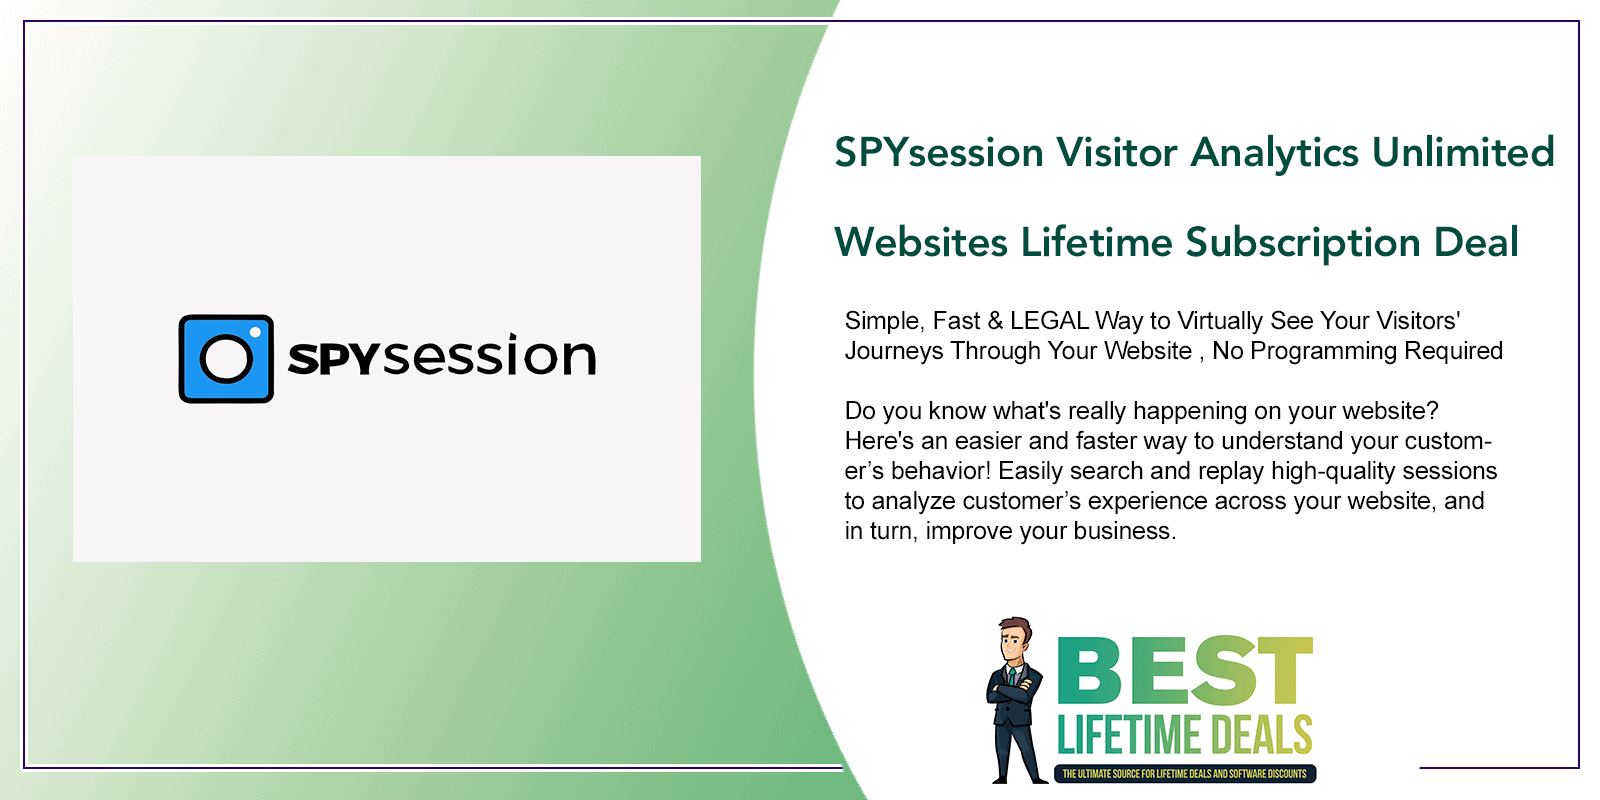 SPYsession Visitor Analytics Featured Image